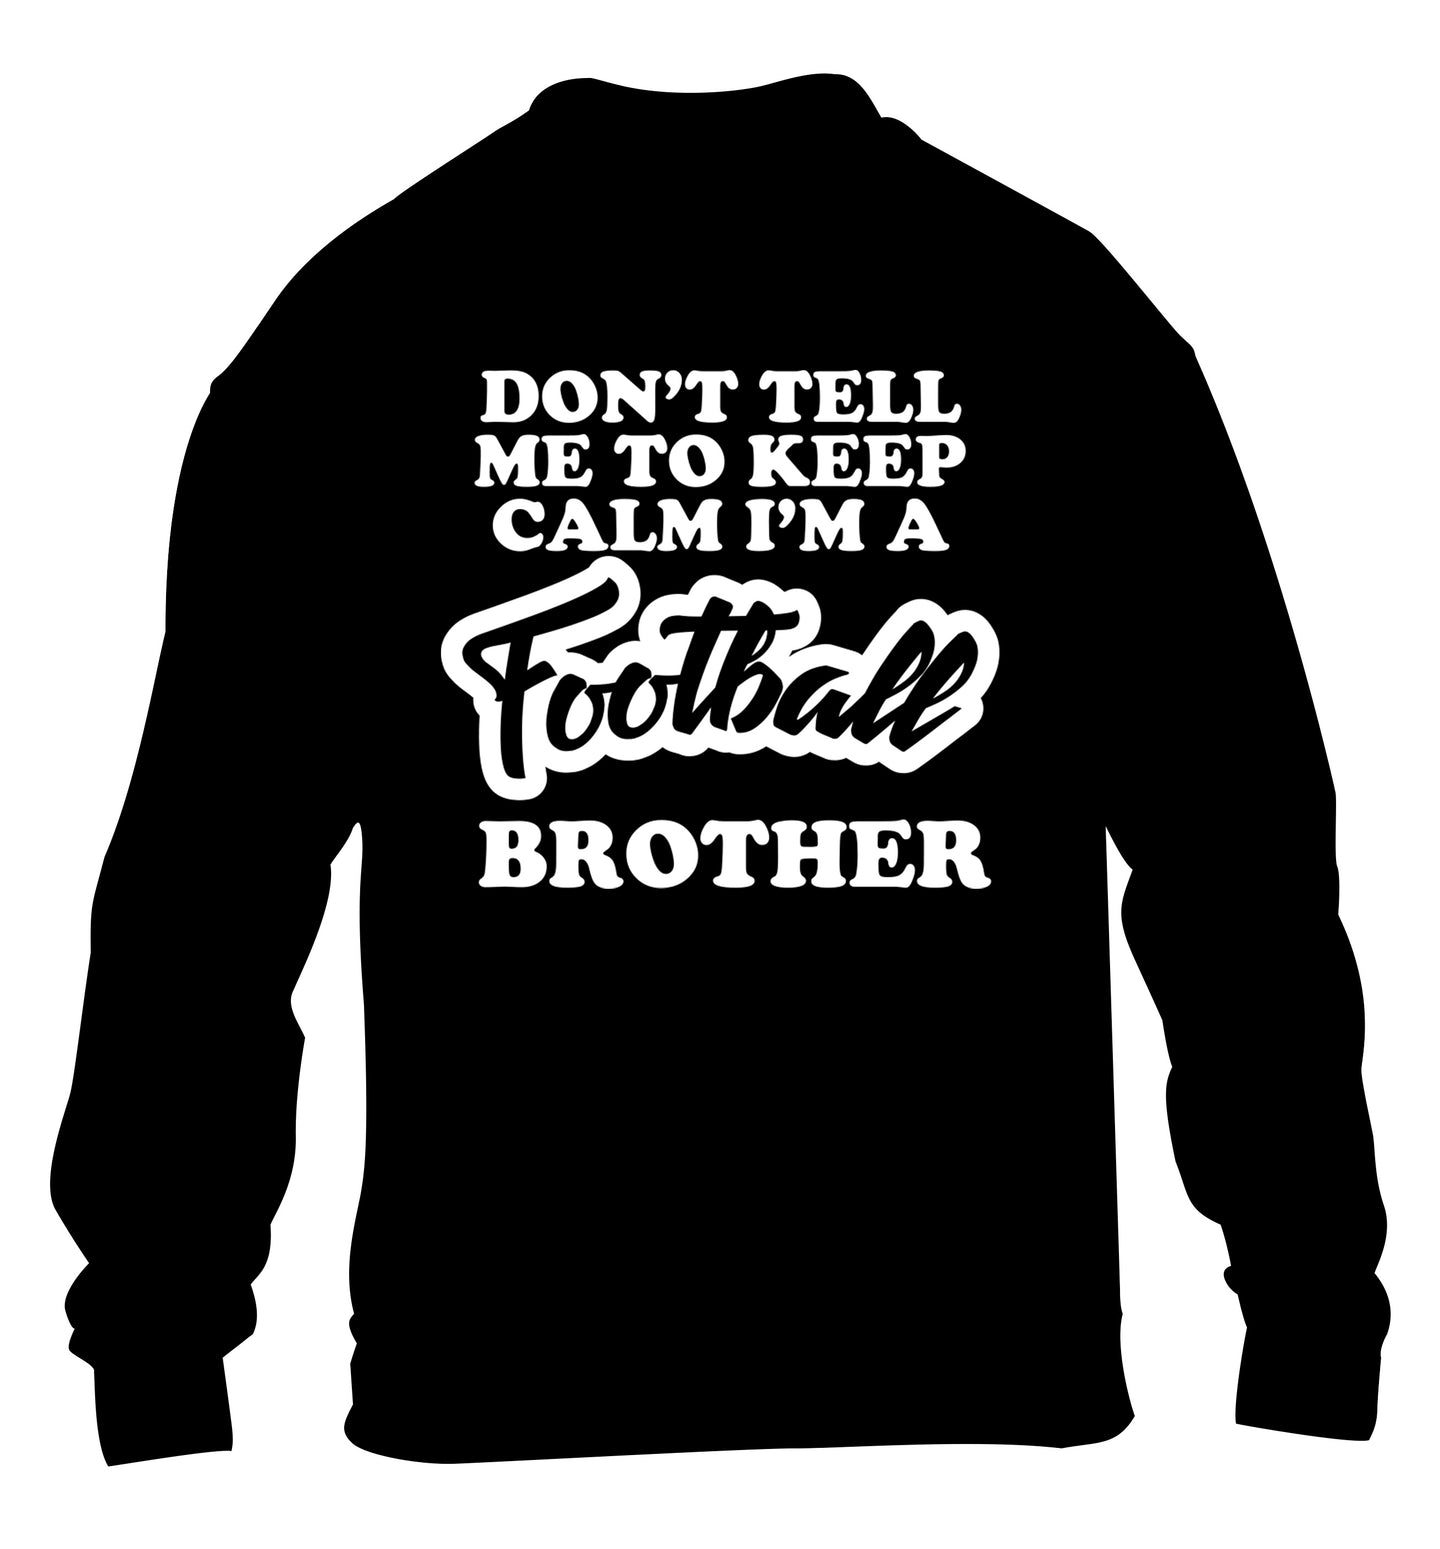 Don't tell me to keep calm I'm a football brother children's black sweater 12-14 Years